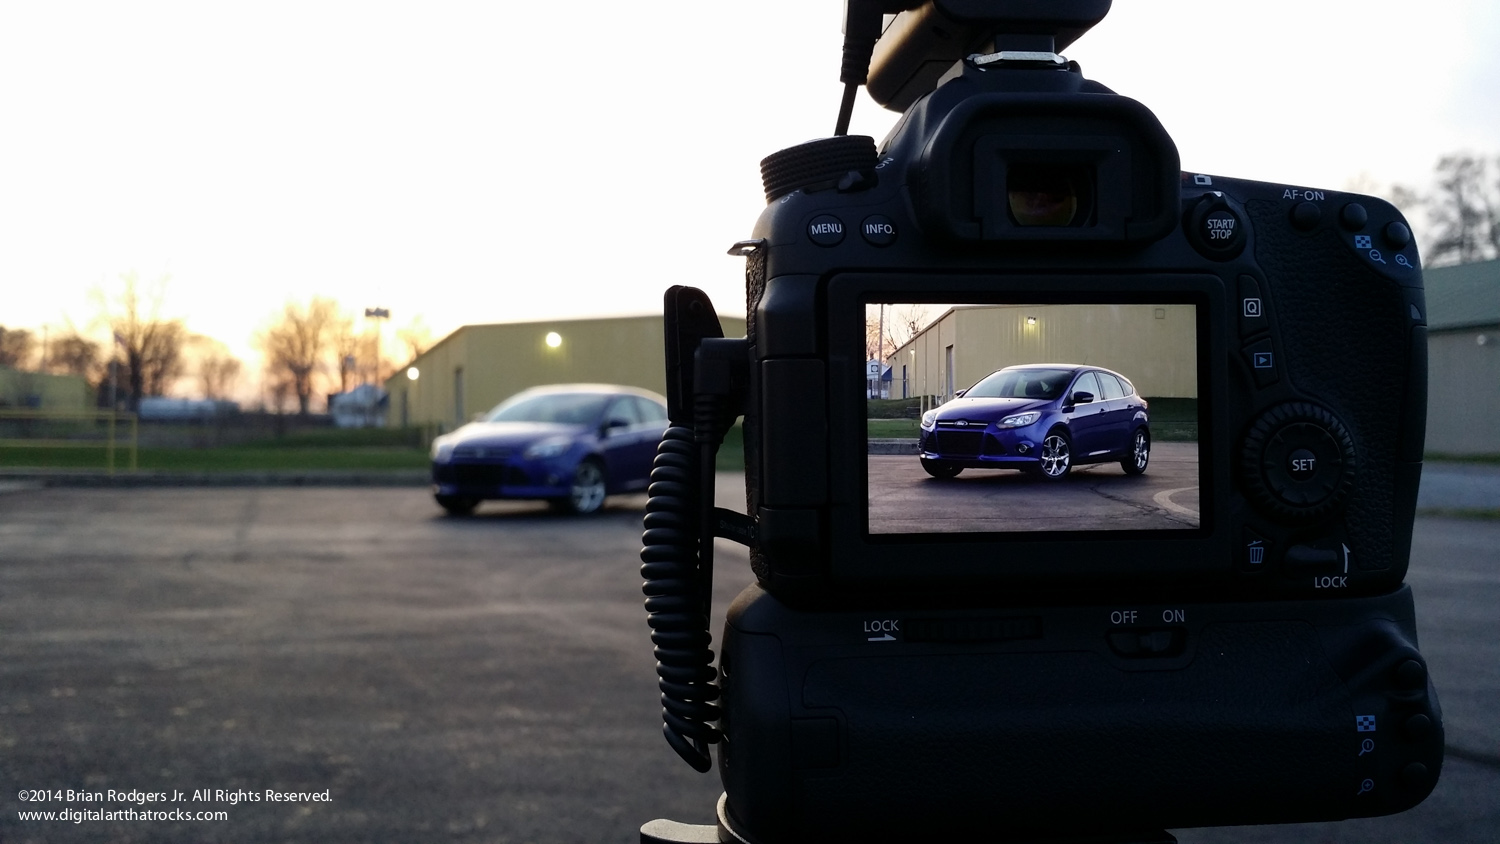 automotive photography behind the scenes ©2014 Brian Rodgers Jr. All Rights Reserved.